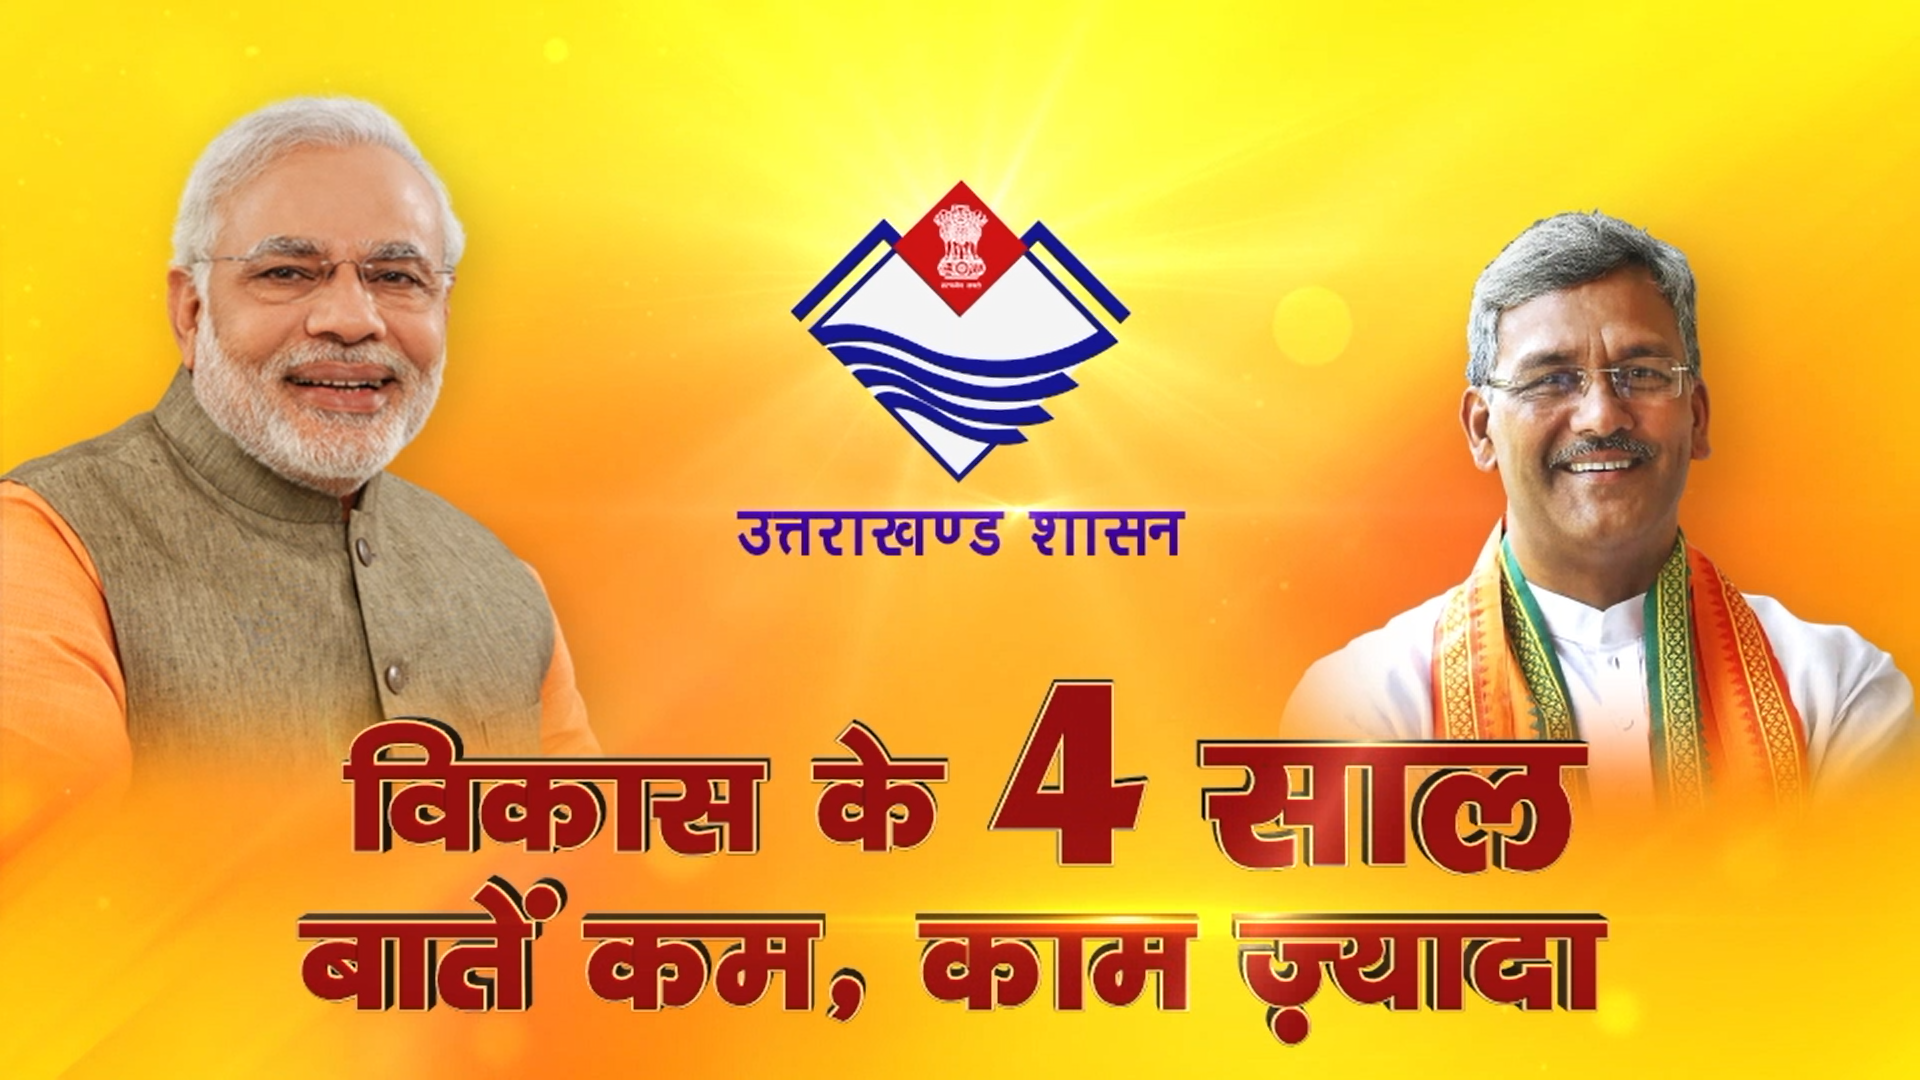 vikas ke 4 saal - video 4